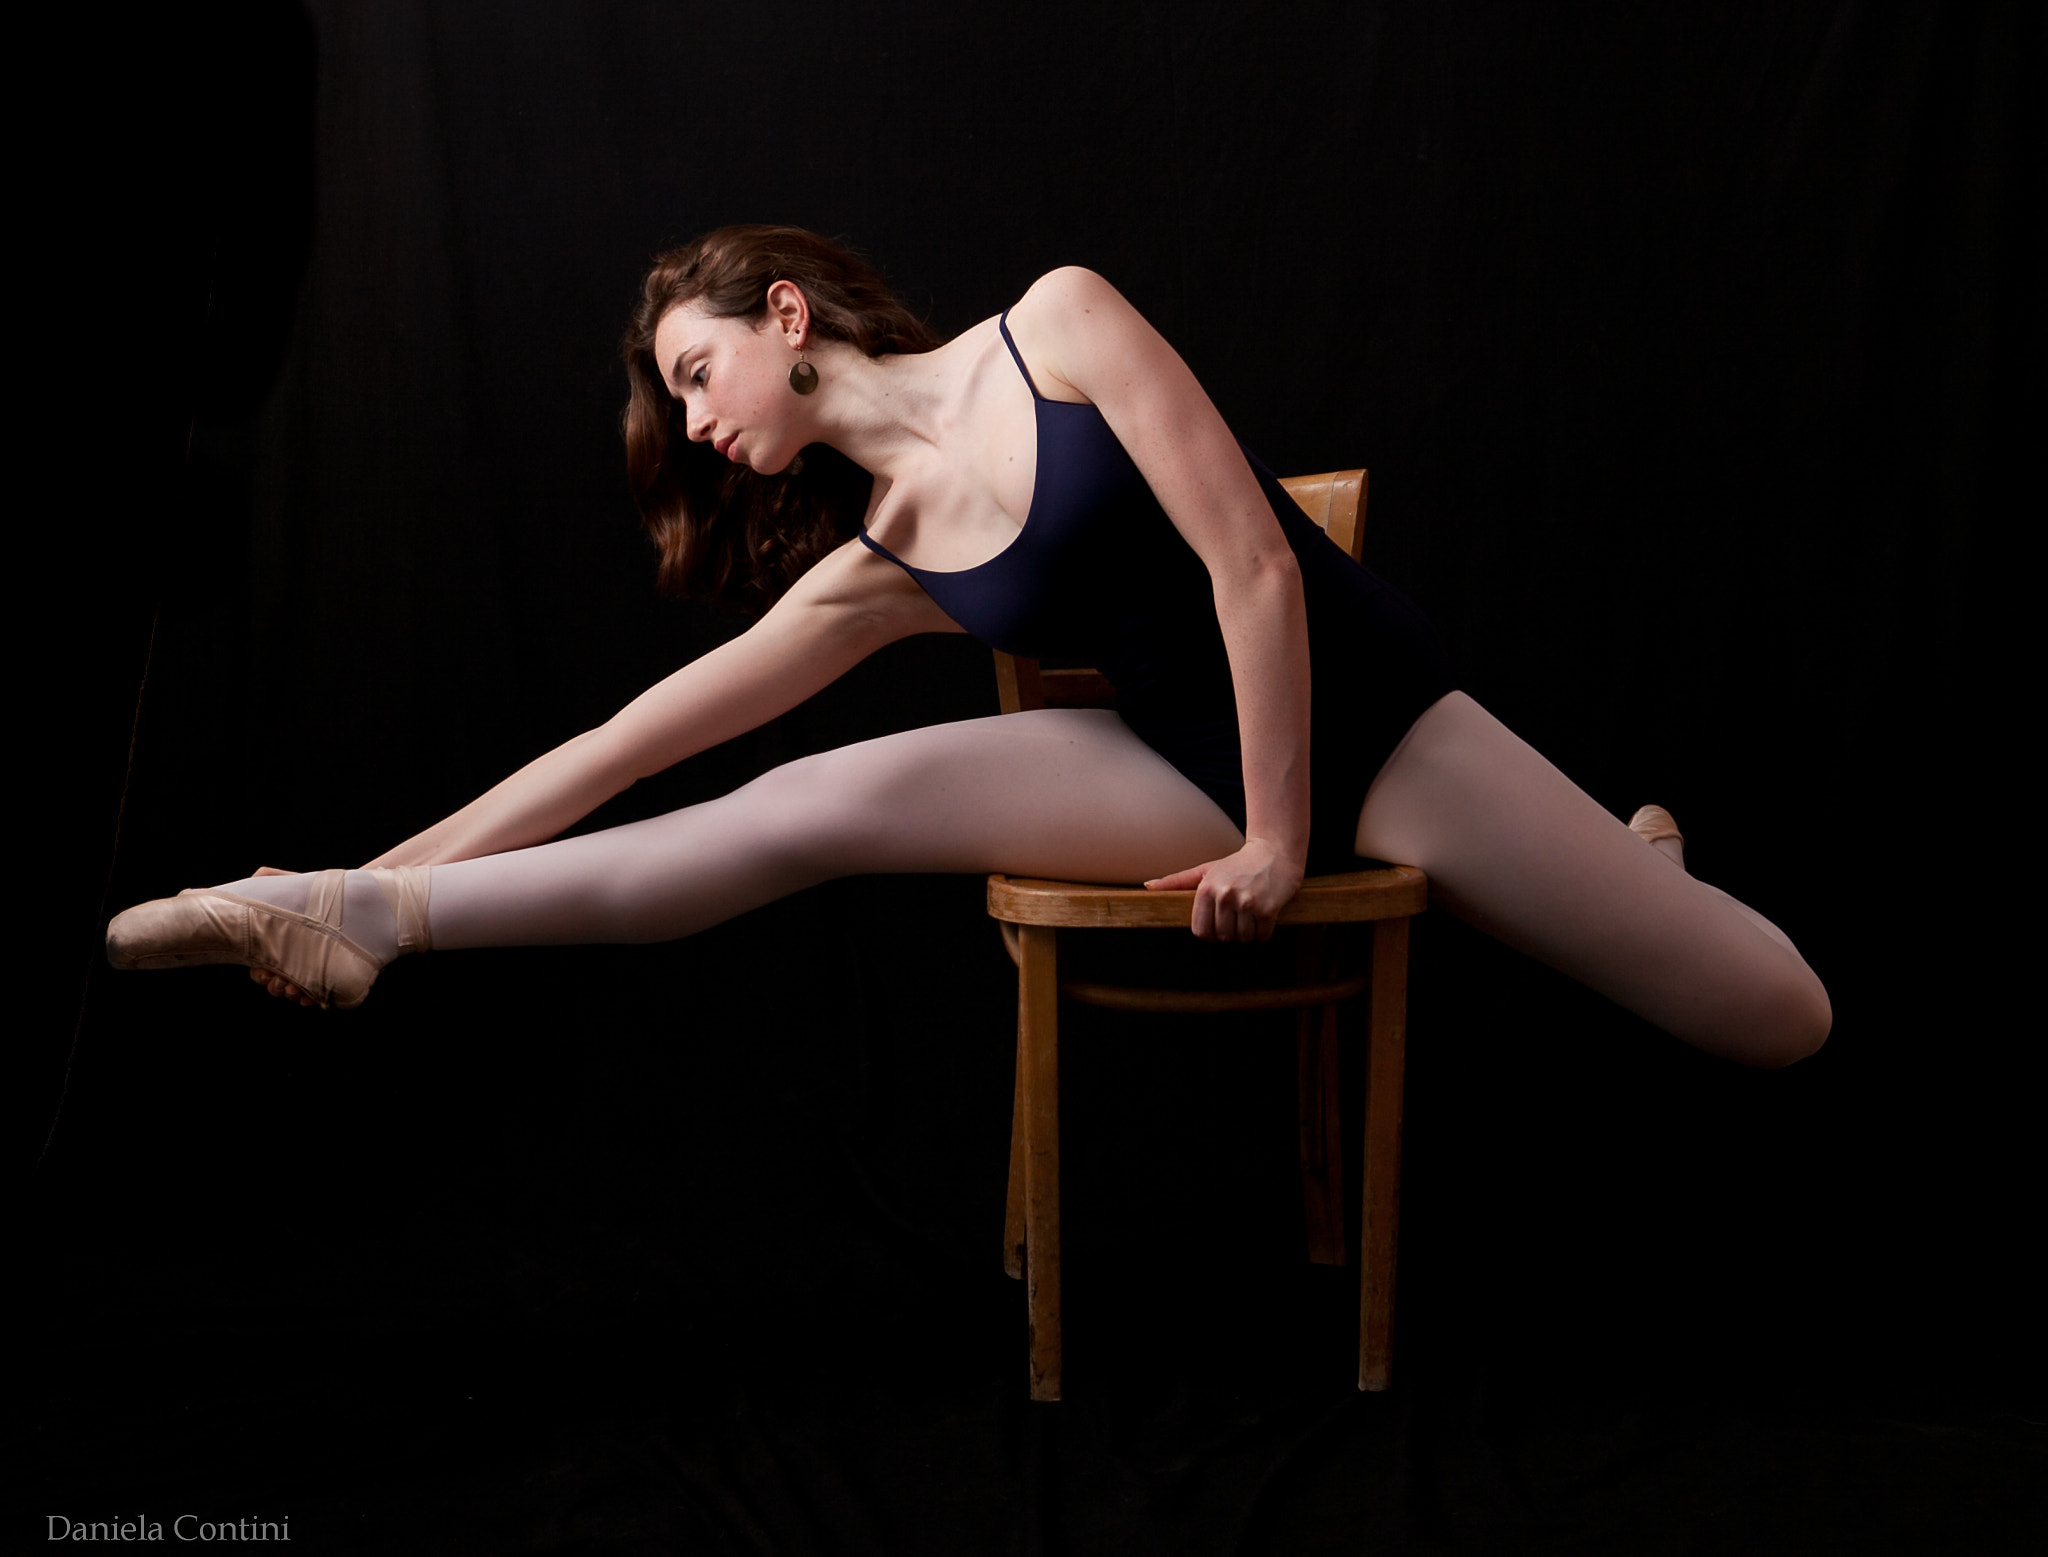 Photograph Dancer 3 by Daniela Contini on 500px